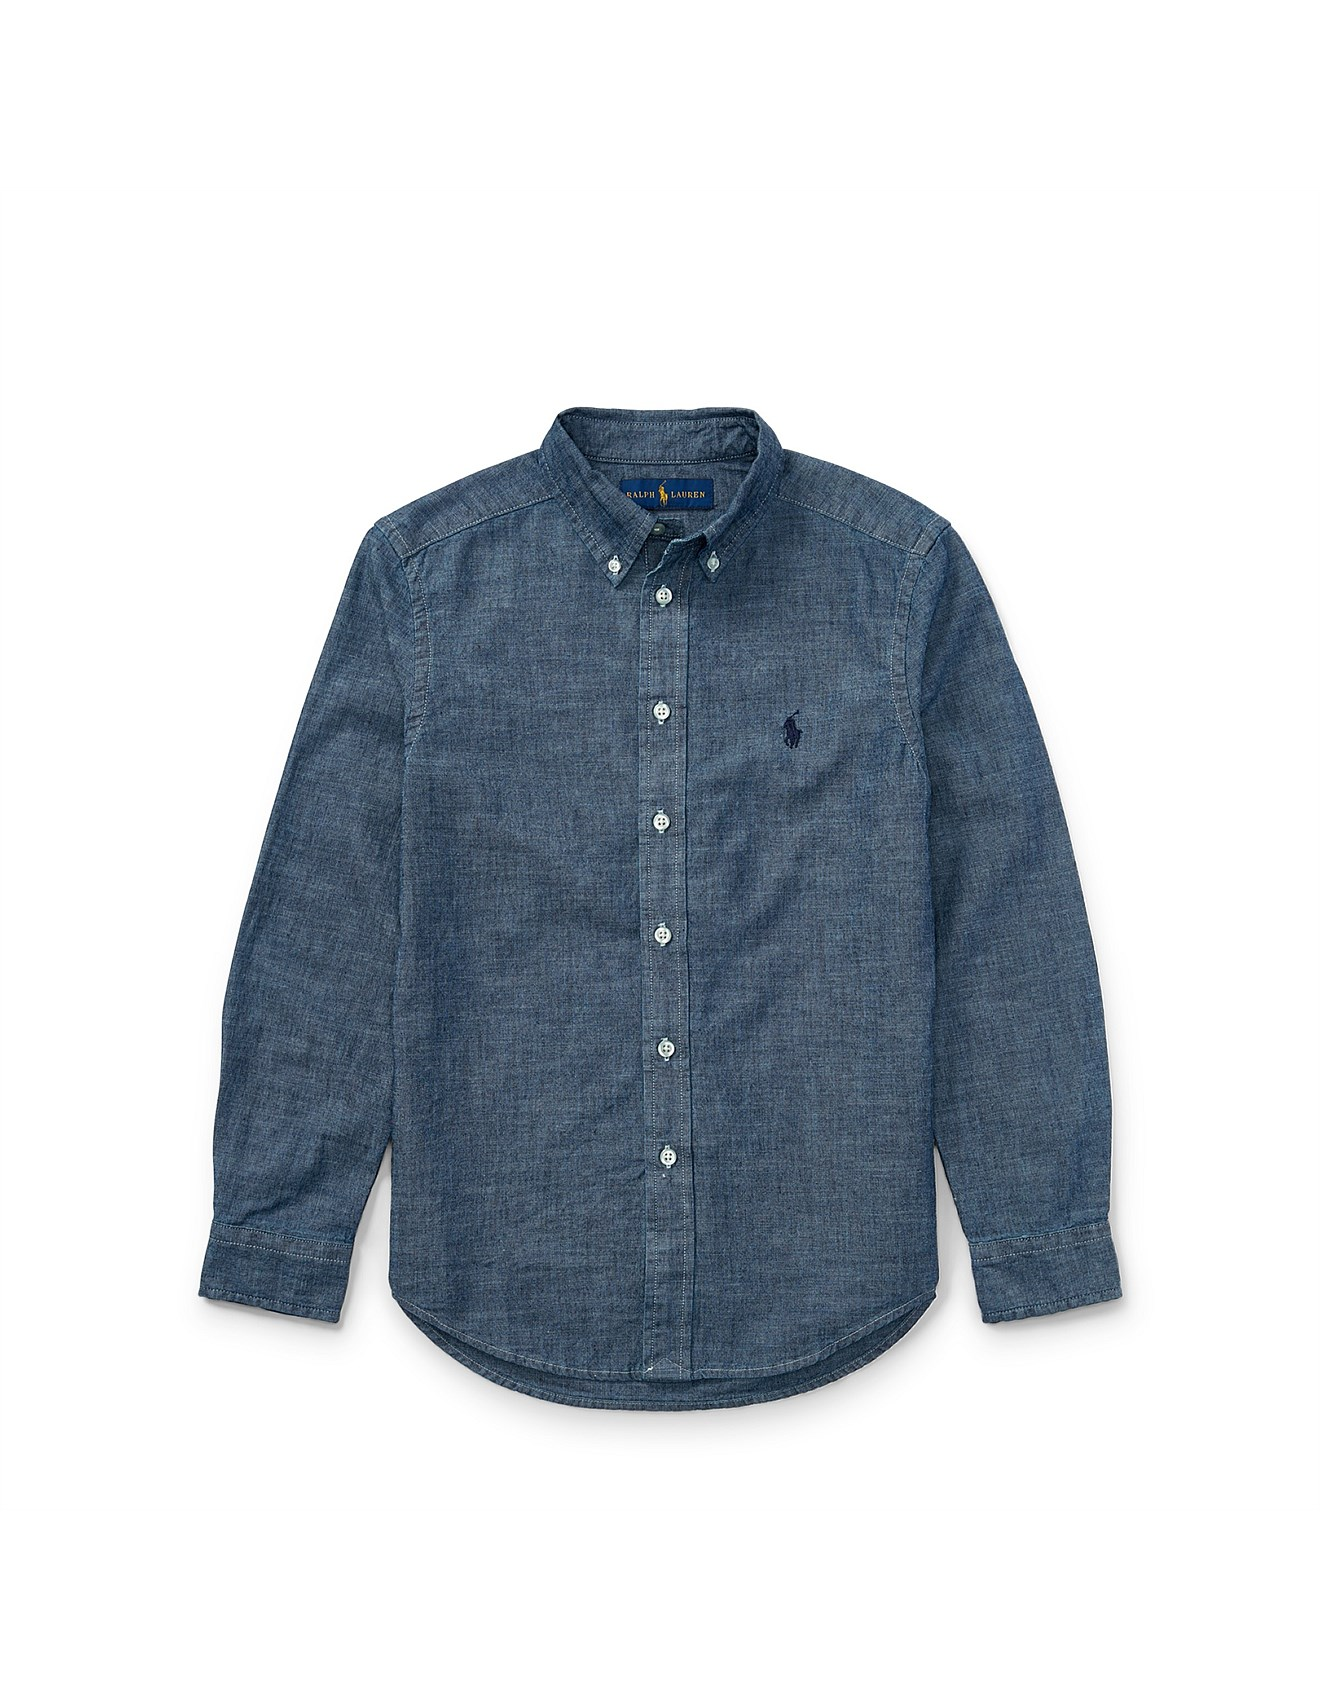 Kids clothing kids baby clothes toys online david for Chambray shirt for kids